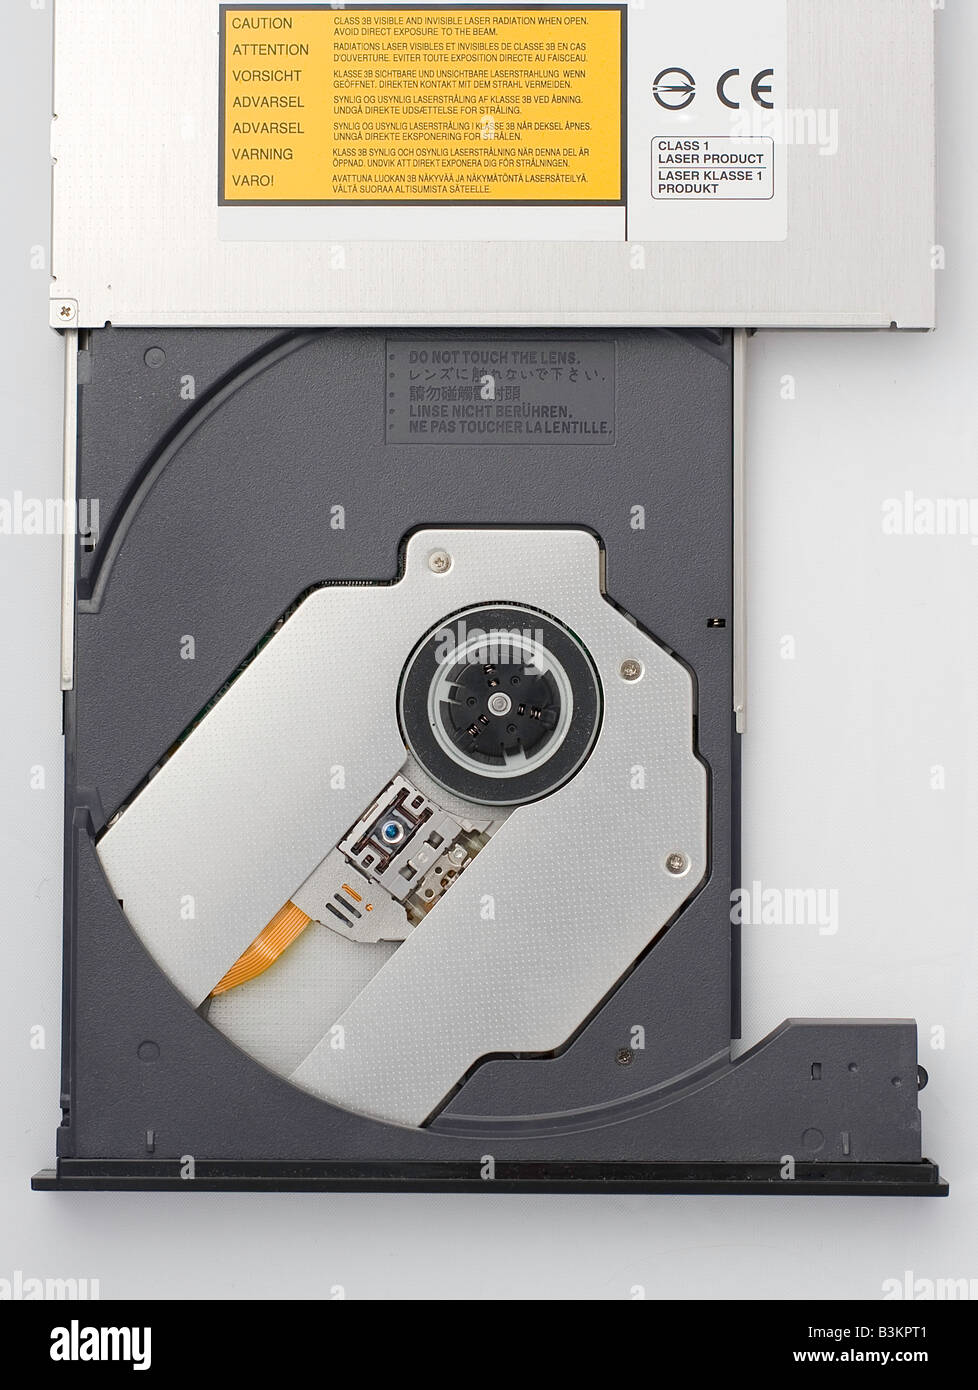 A DVD-R driver - Stock Image